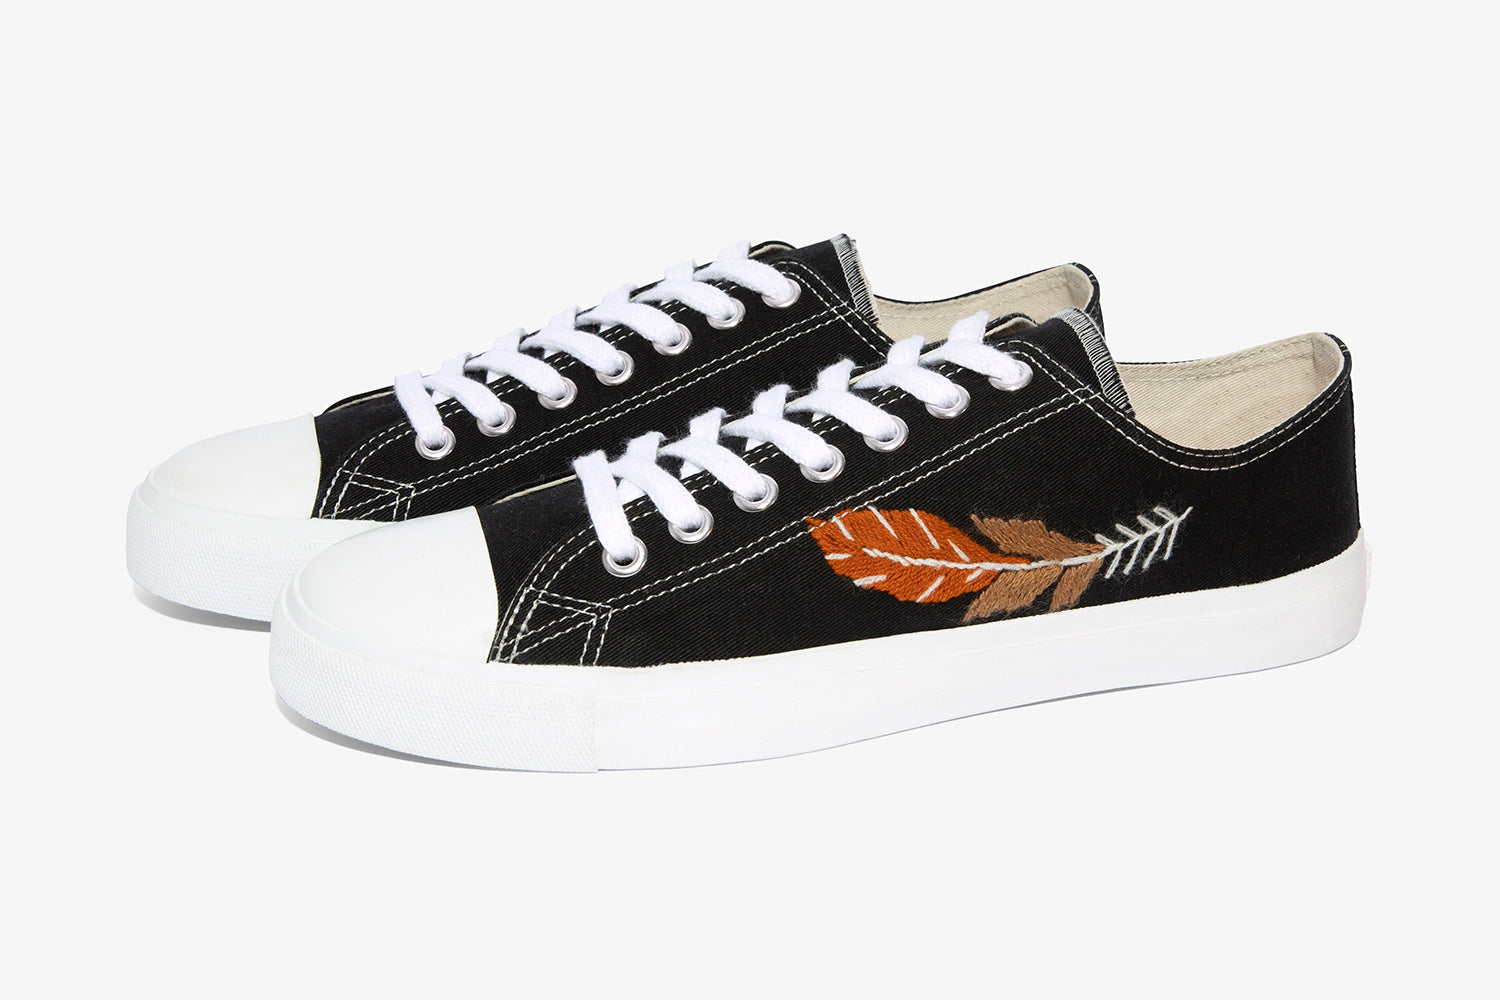 Sustainable Black low cut sneaker with feather hand embroidery